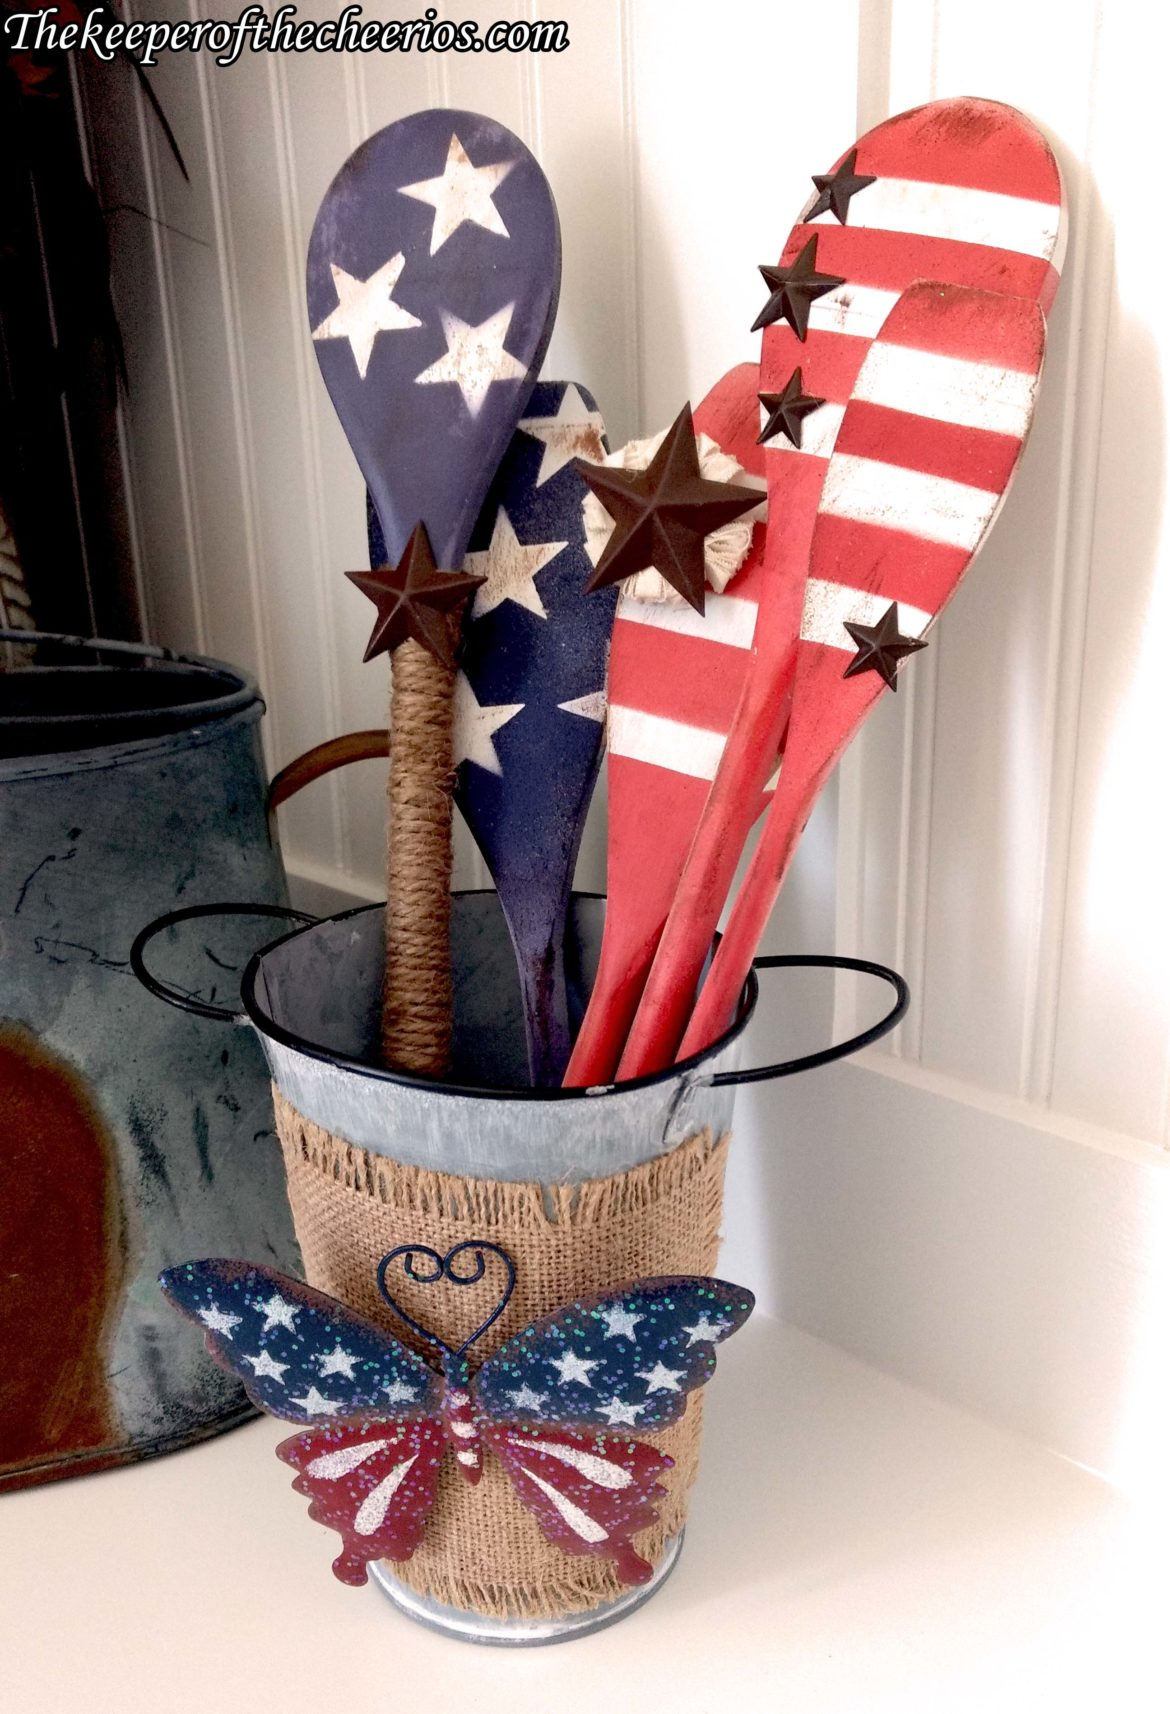 Patriotic Wooden Spoons Decor The Keeper Of The Cheerios